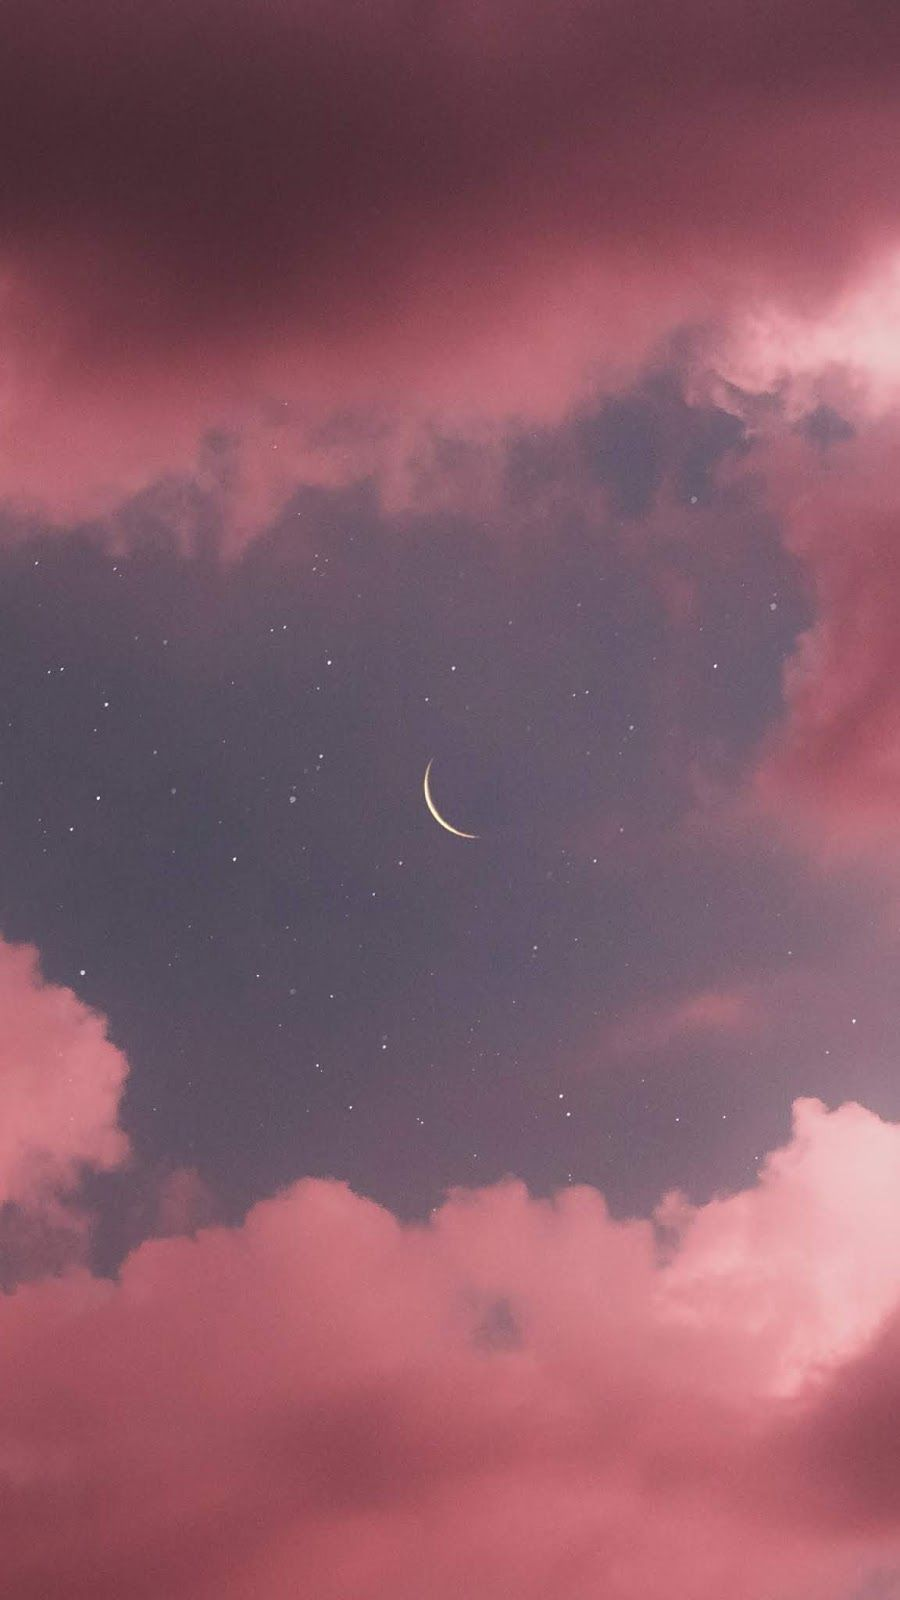 Crescent Moon In The Pink Sky Beautiful Wallpapers Backgrounds